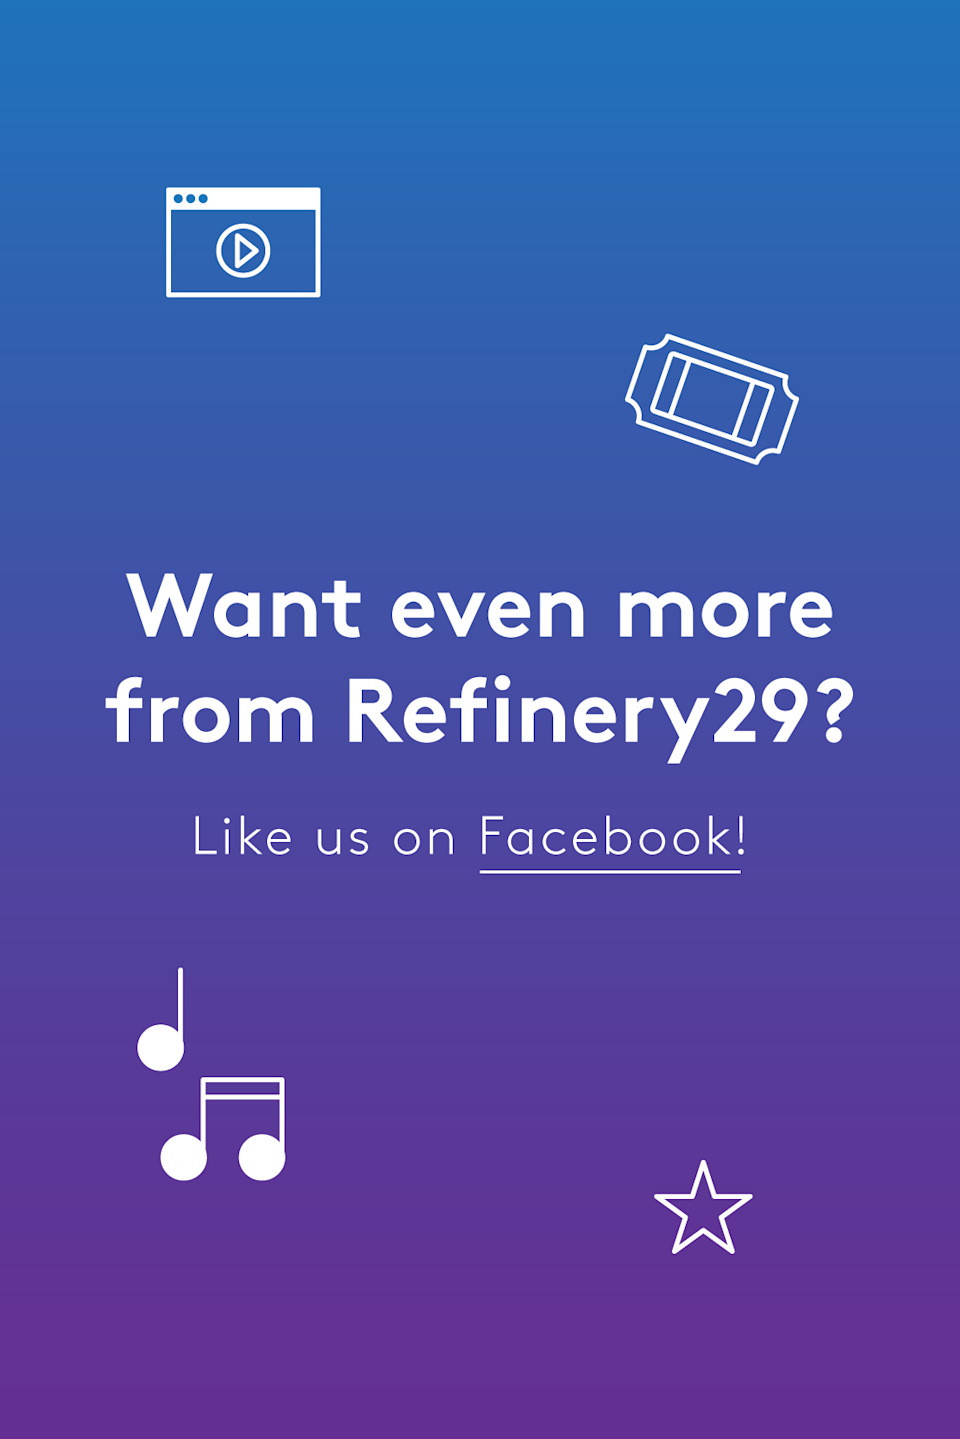 "Like this post? There's more. Get tons of celebrity news, fun takes on pop culture, and trending stories on the <a href=""https://www.facebook.com/R29Entertainment/?fref=ts"" rel=""nofollow noopener"" target=""_blank"" data-ylk=""slk:Refinery29 Entertainment Facebook page"" class=""link rapid-noclick-resp"">Refinery29 Entertainment Facebook page</a>. Like us on Facebook — we'll see you there!"